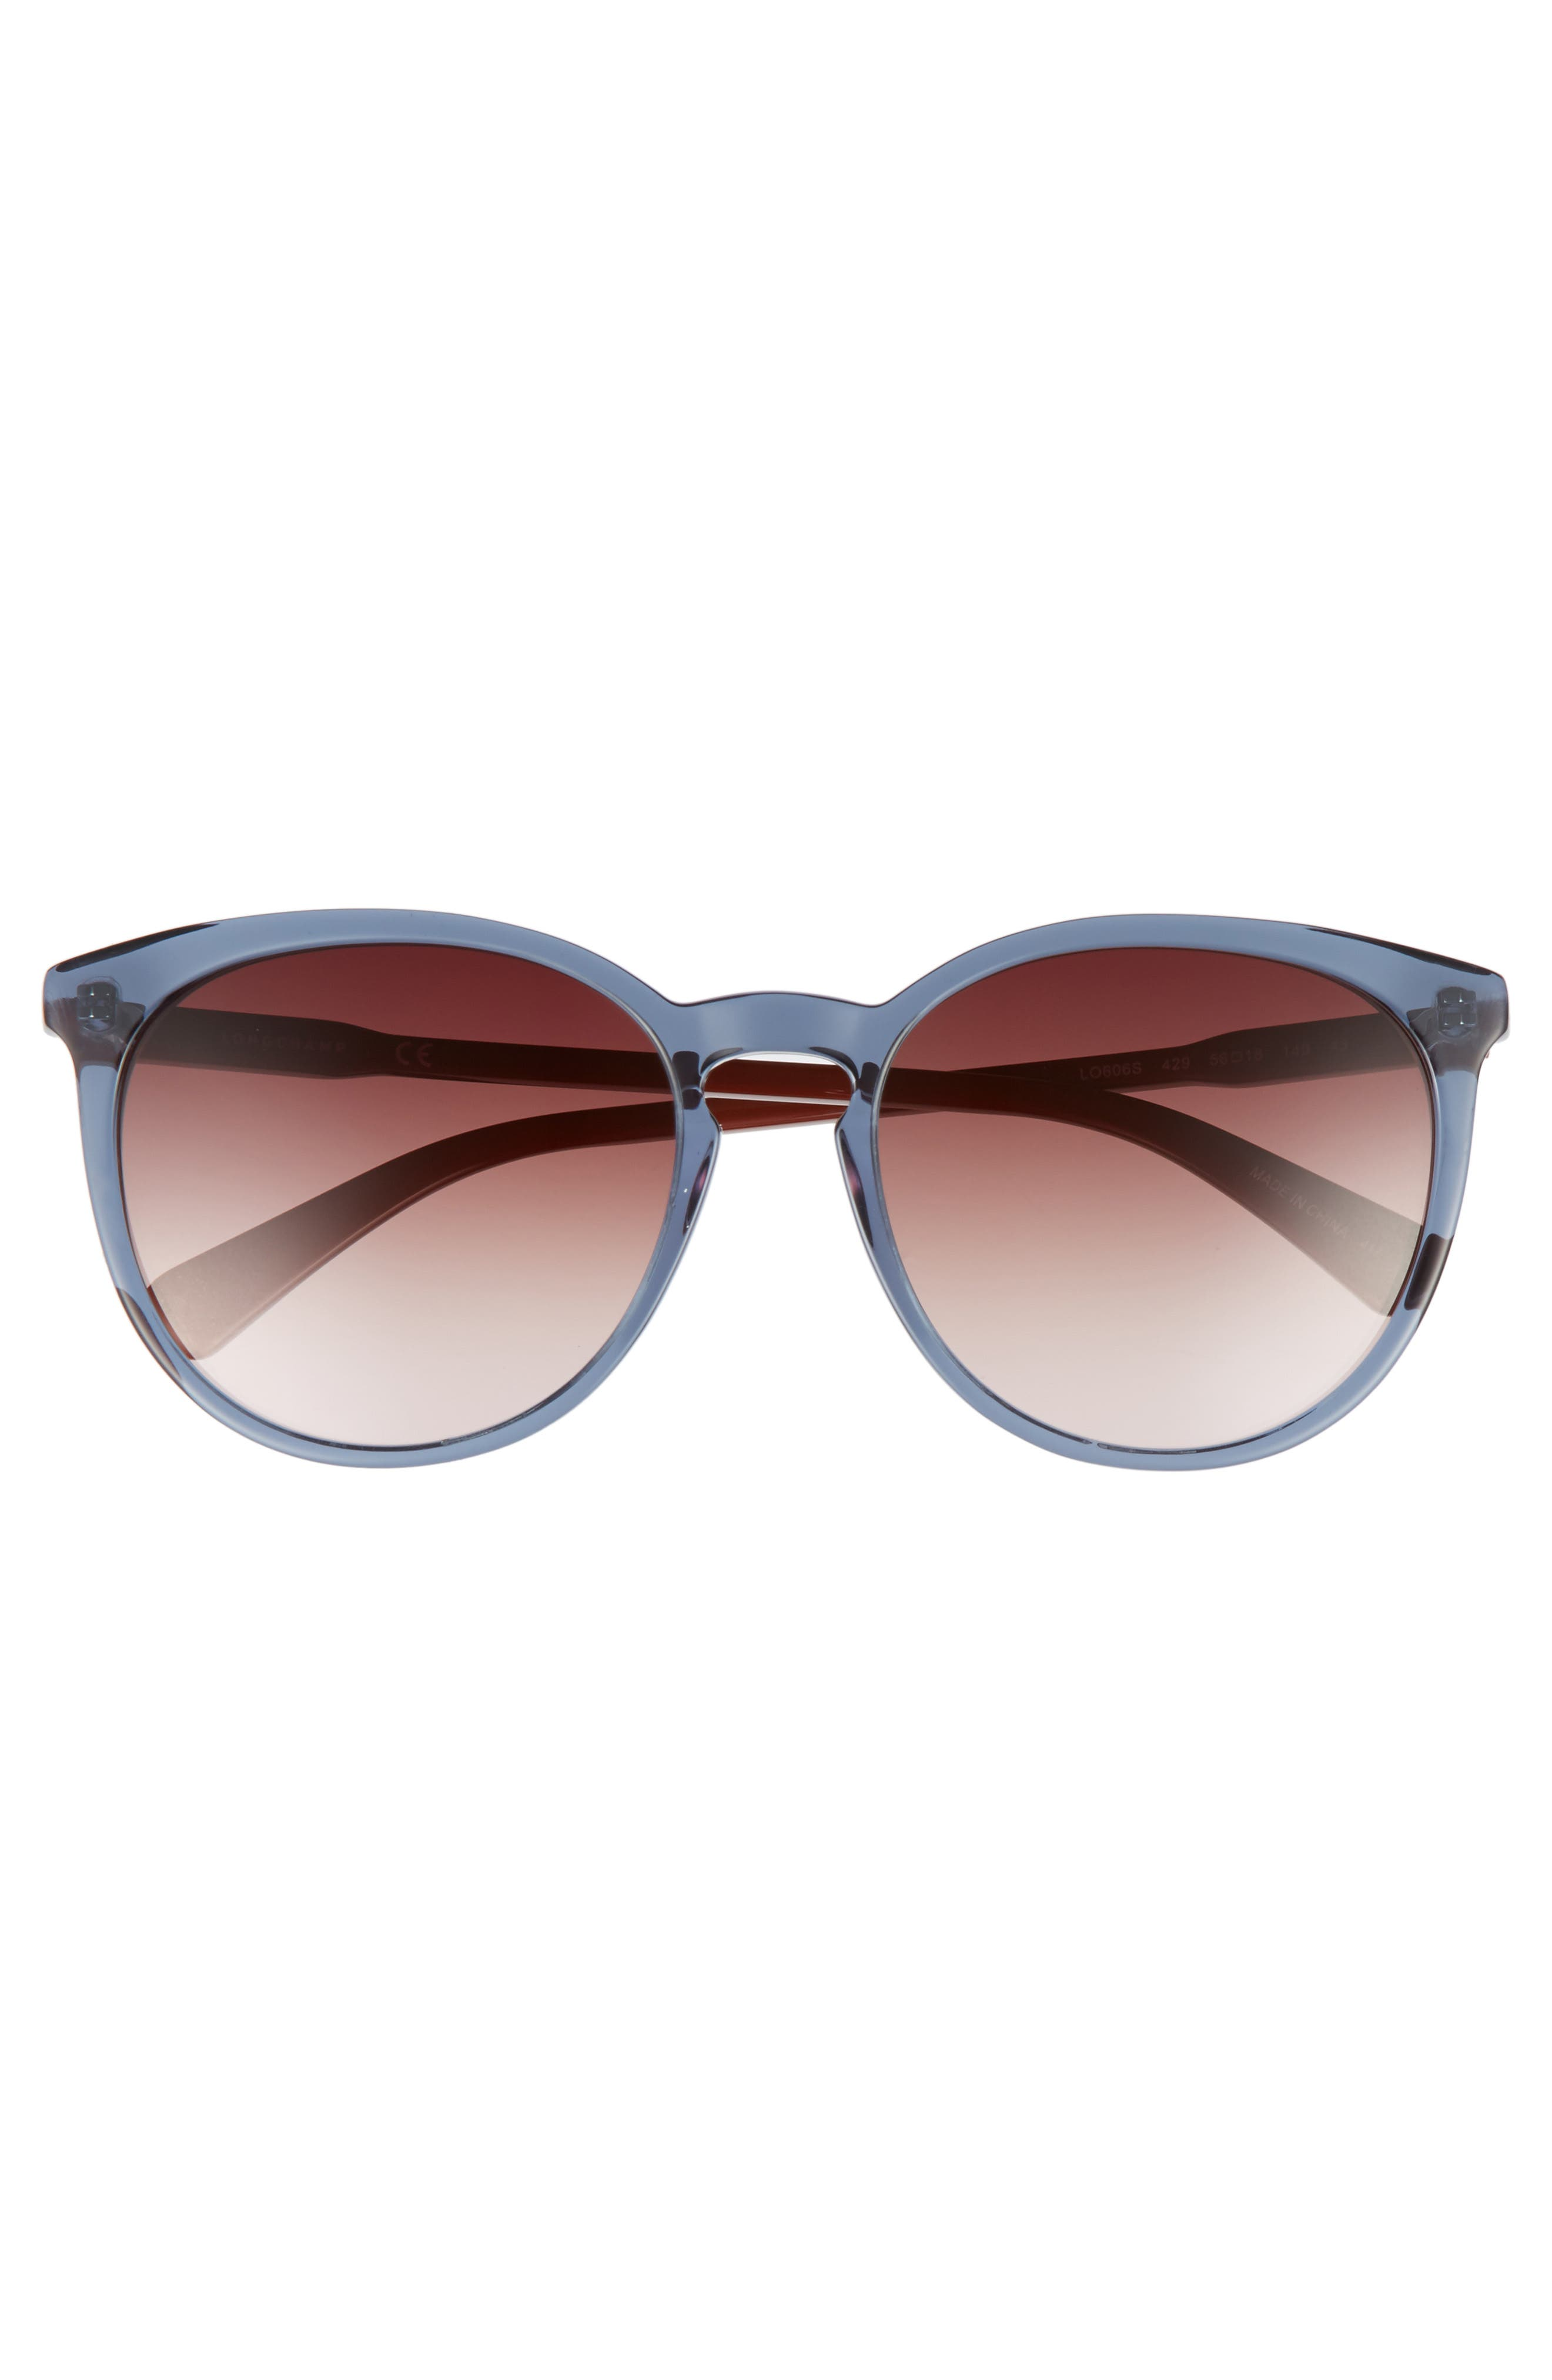 56mm Round Sunglasses,                             Alternate thumbnail 3, color,                             Petrol Berry